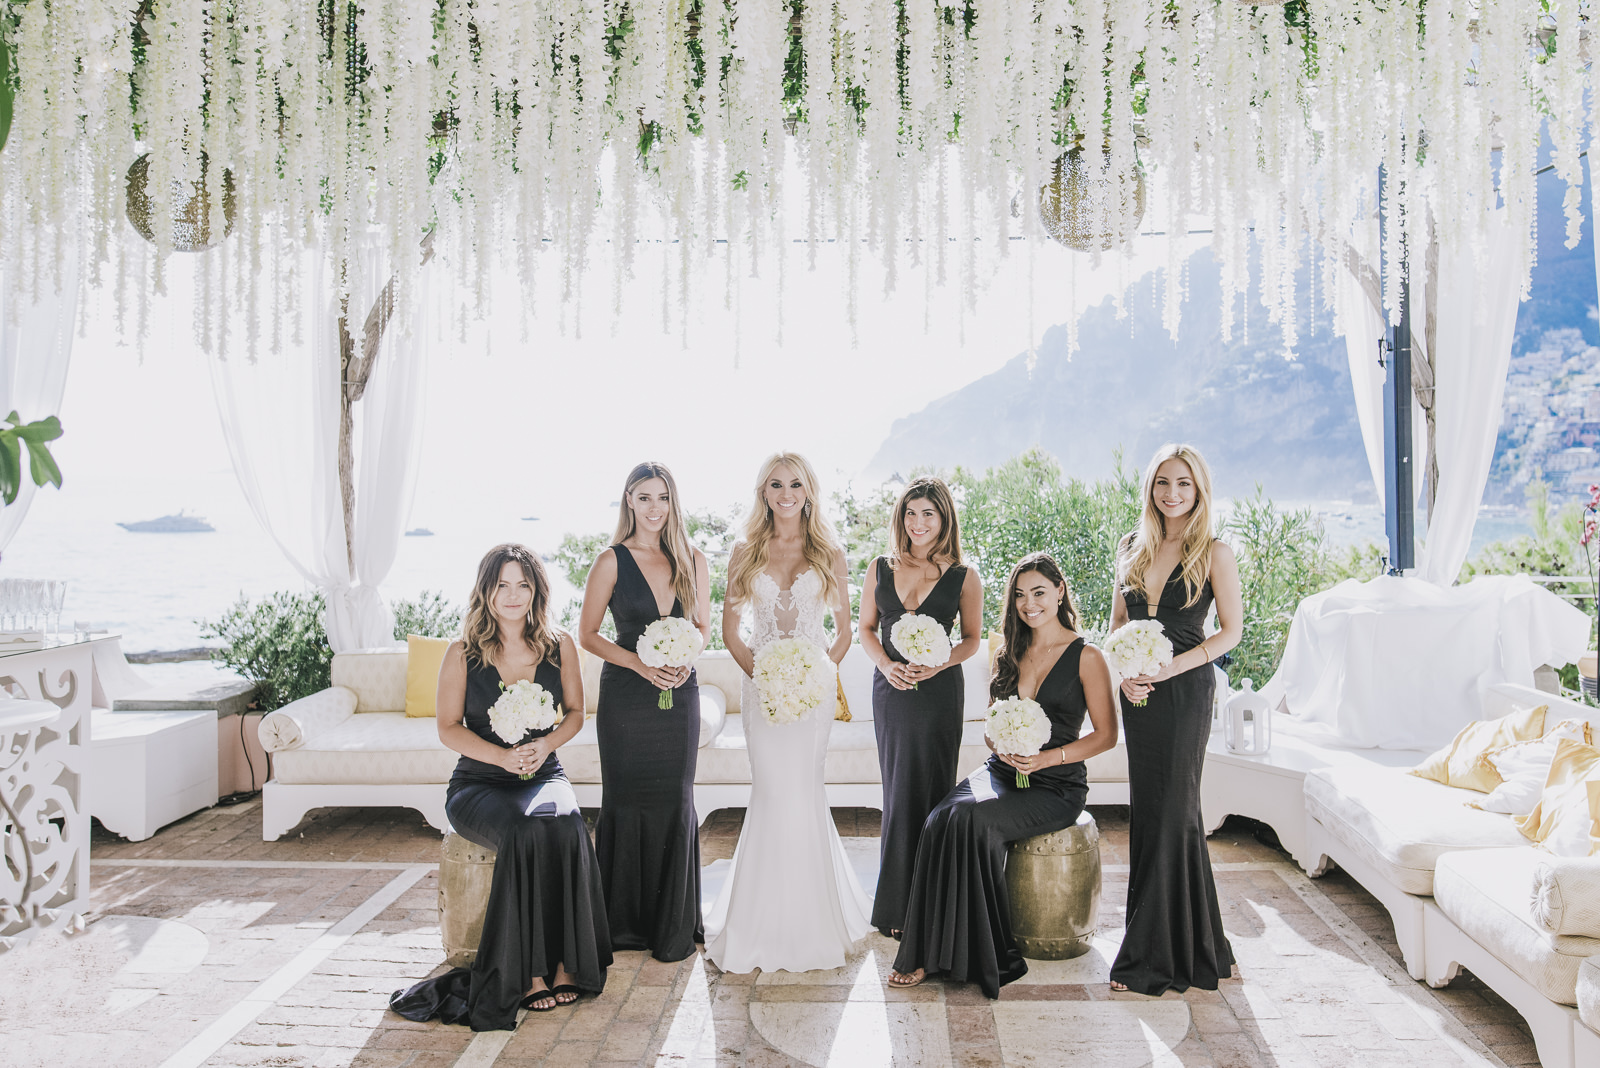 the bride with the bridesmaids in black dress